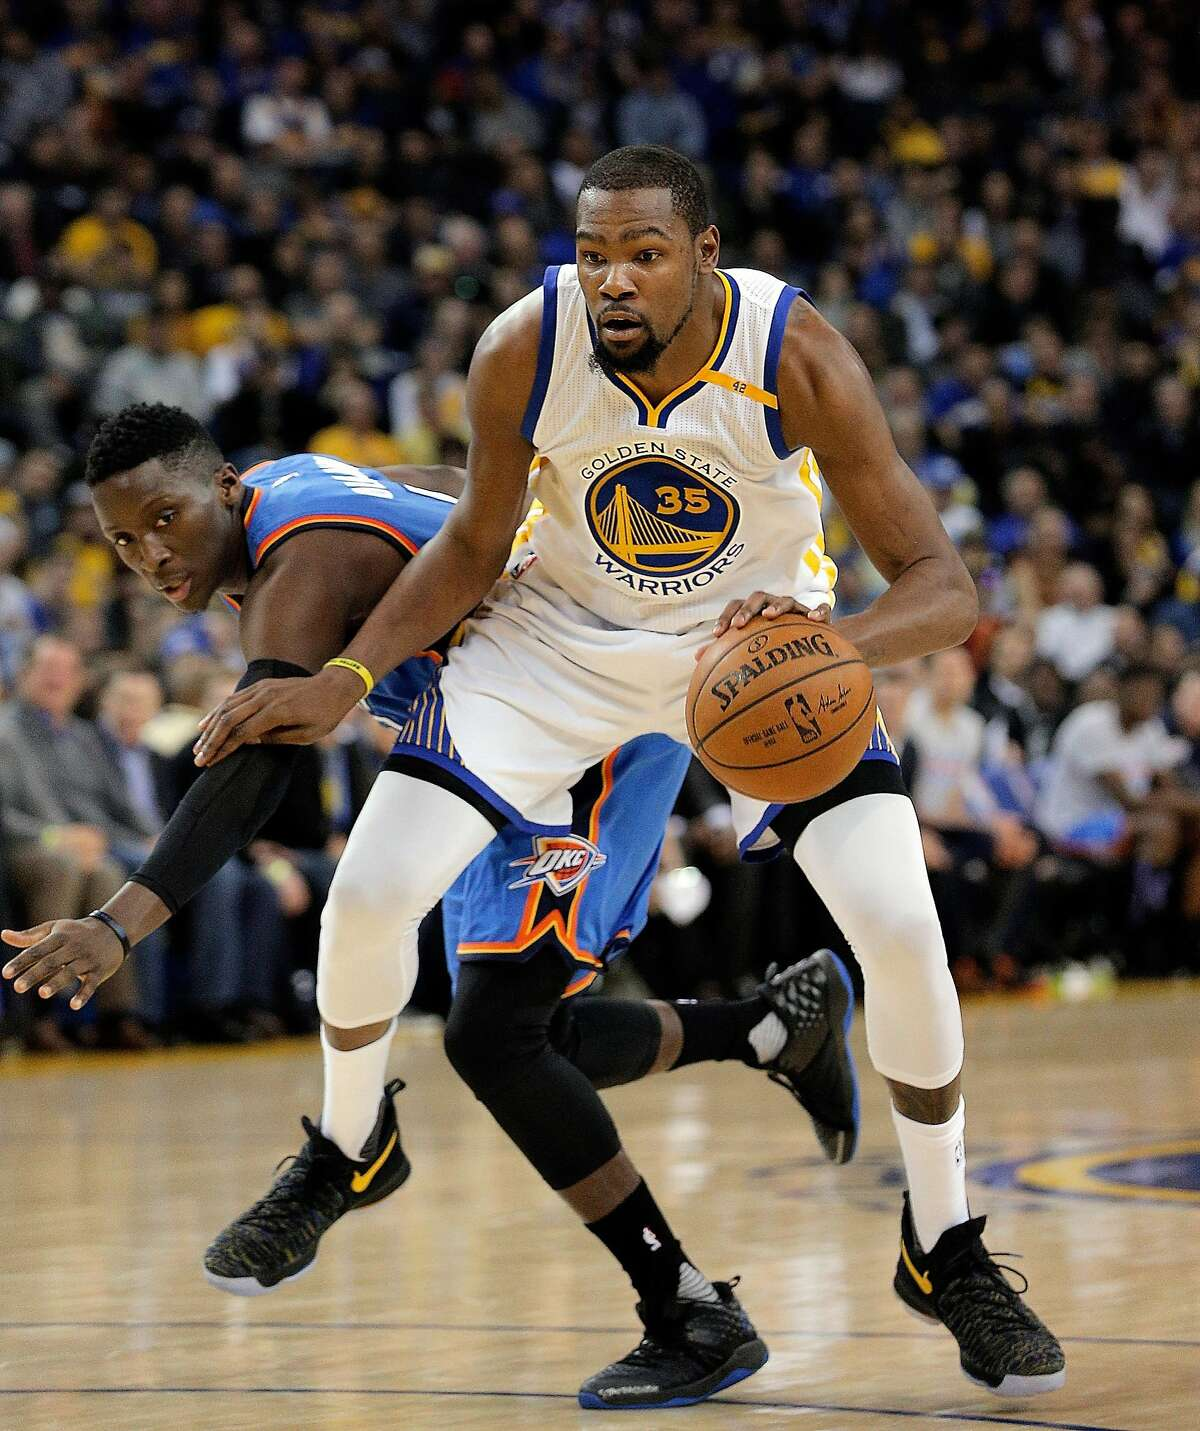 Kevin Durant (35) drives to the basket defended by Victor Oladipo (5) as the Golden State Warriors played the Oklahoma City Thunder at Oracle Arena in Oakland, Calif., on Wednesday, January 18, 2017.